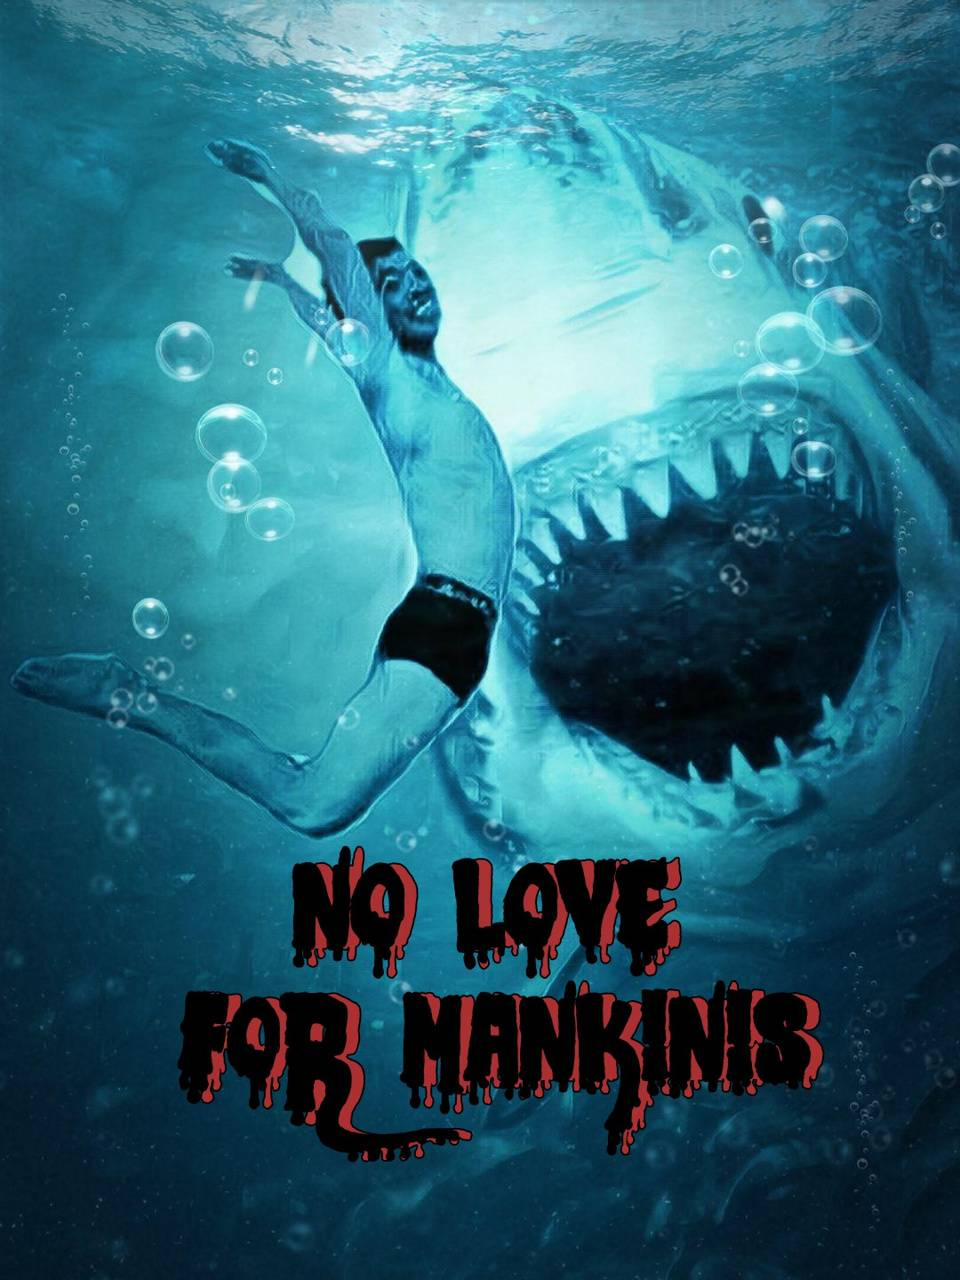 No love for mankinis